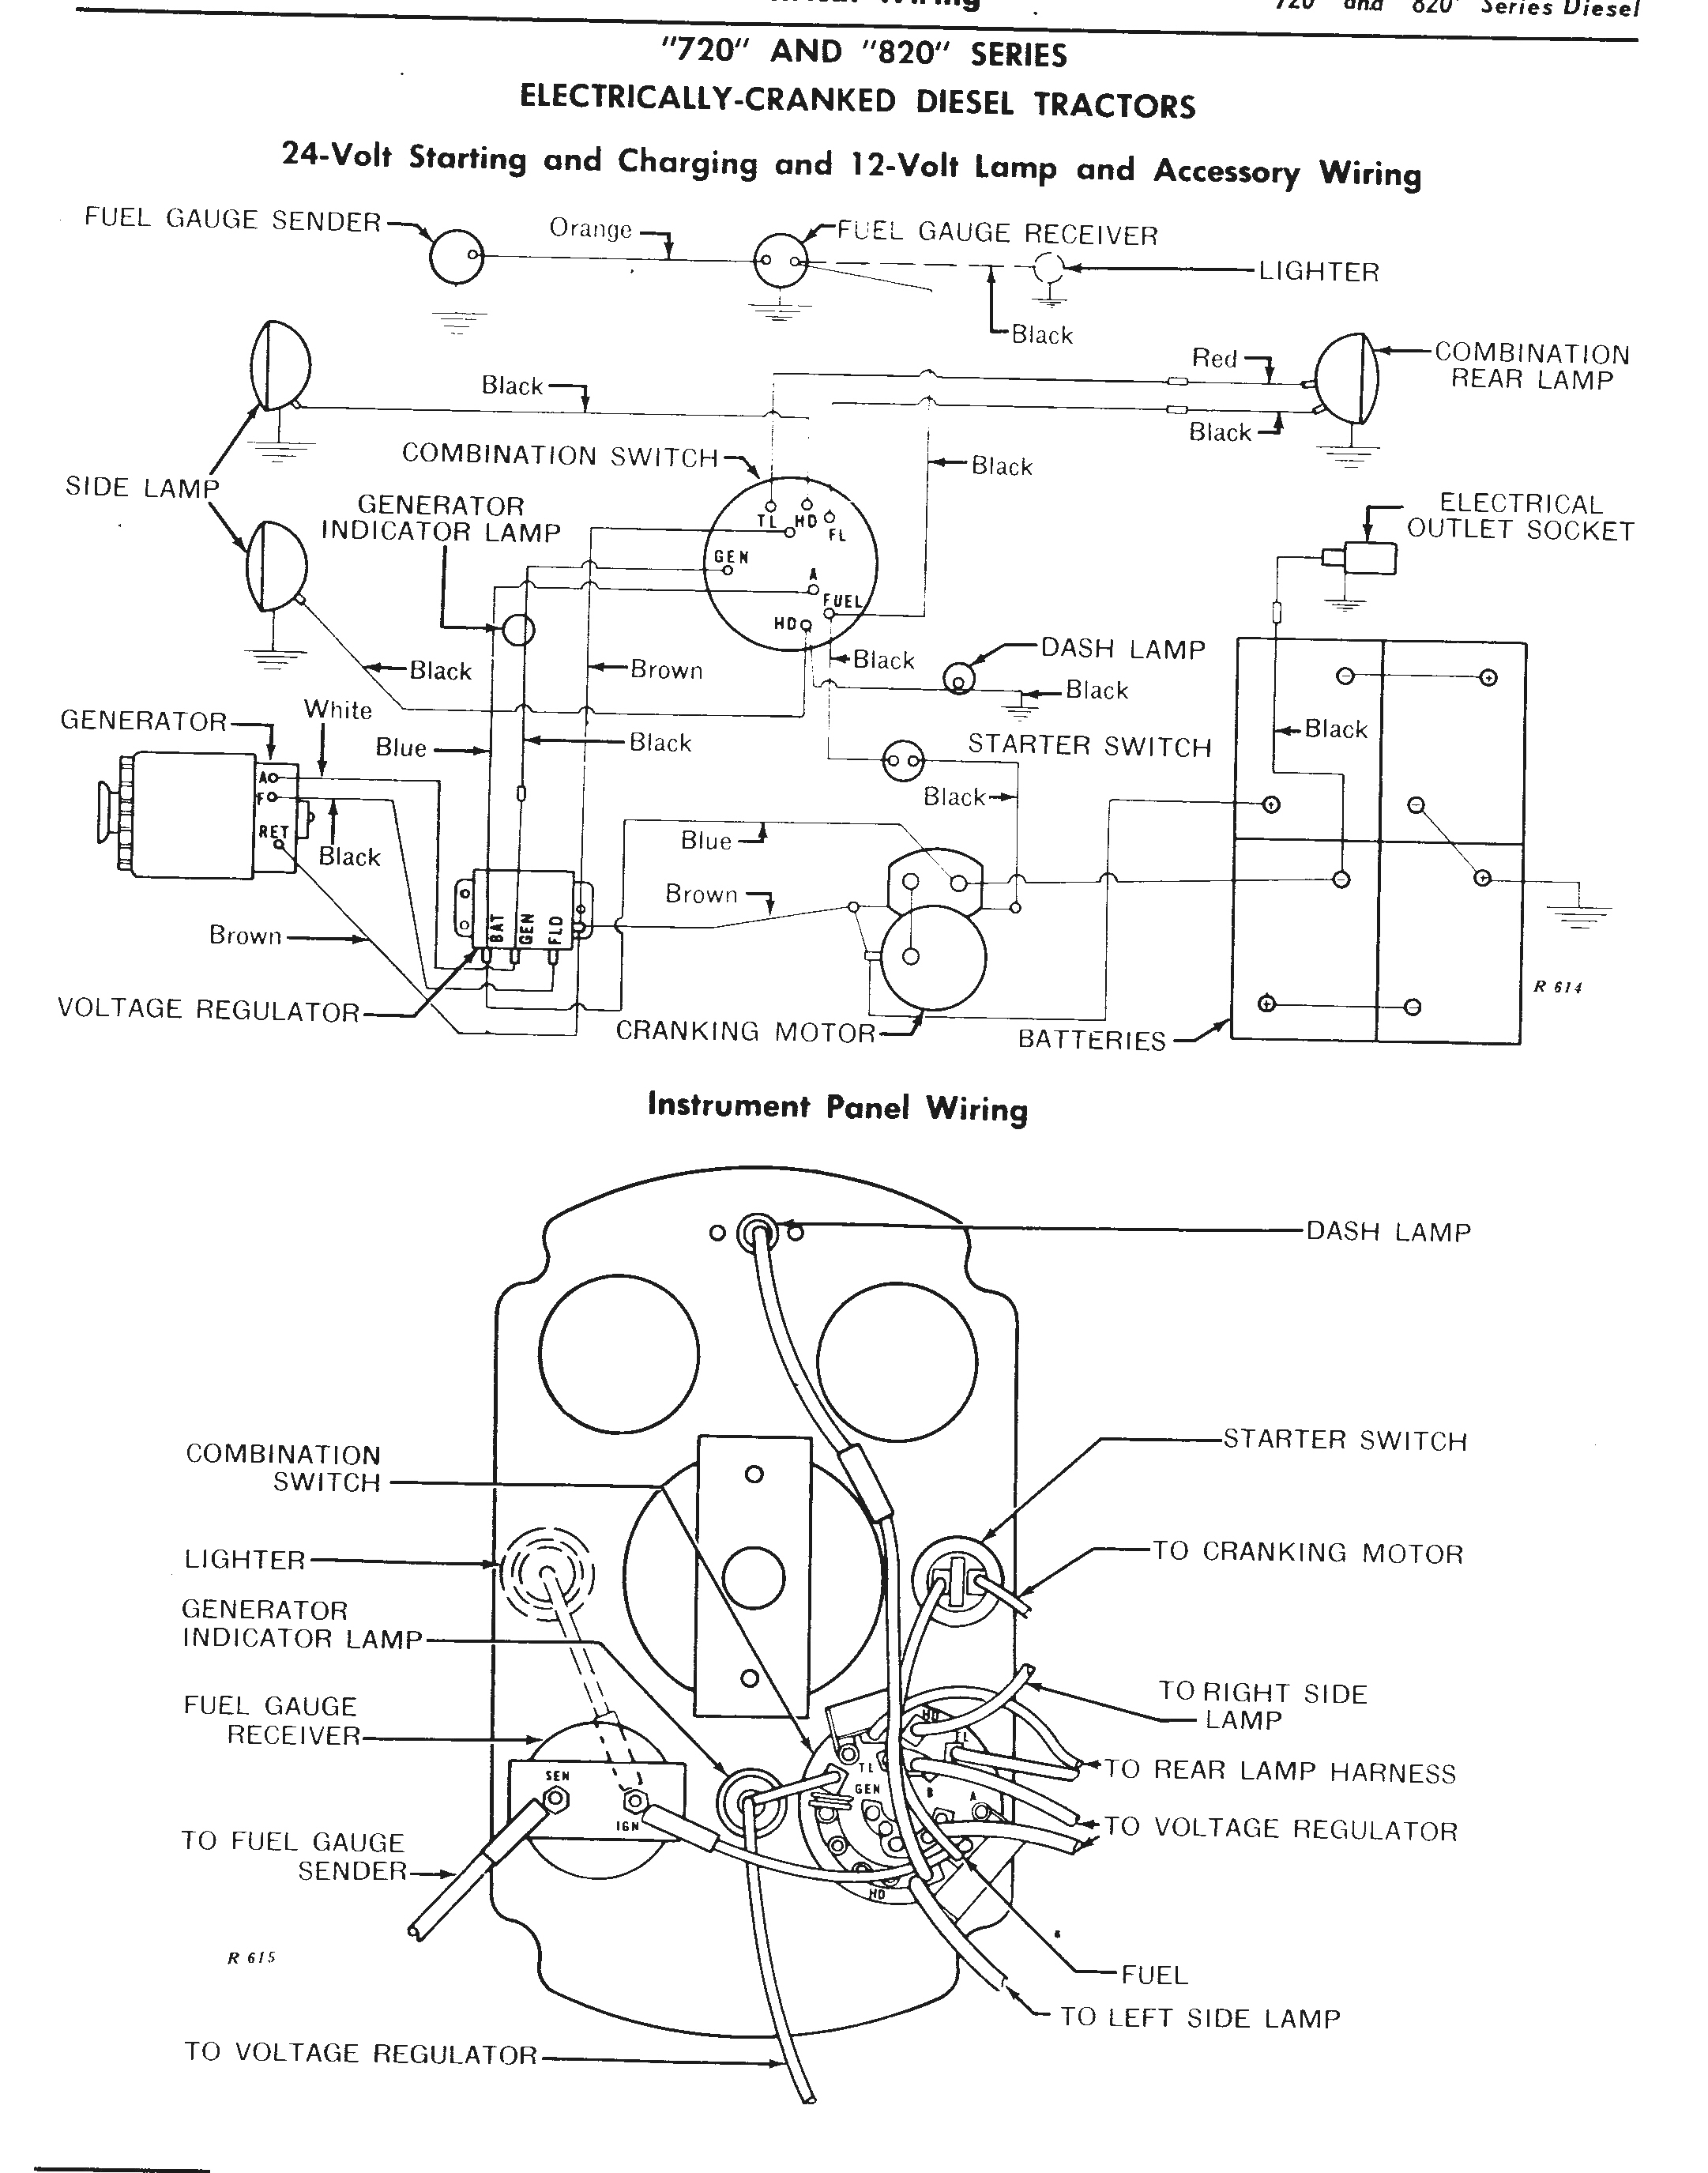 deere_24v_wiring the john deere 24 volt electrical system explained  at webbmarketing.co